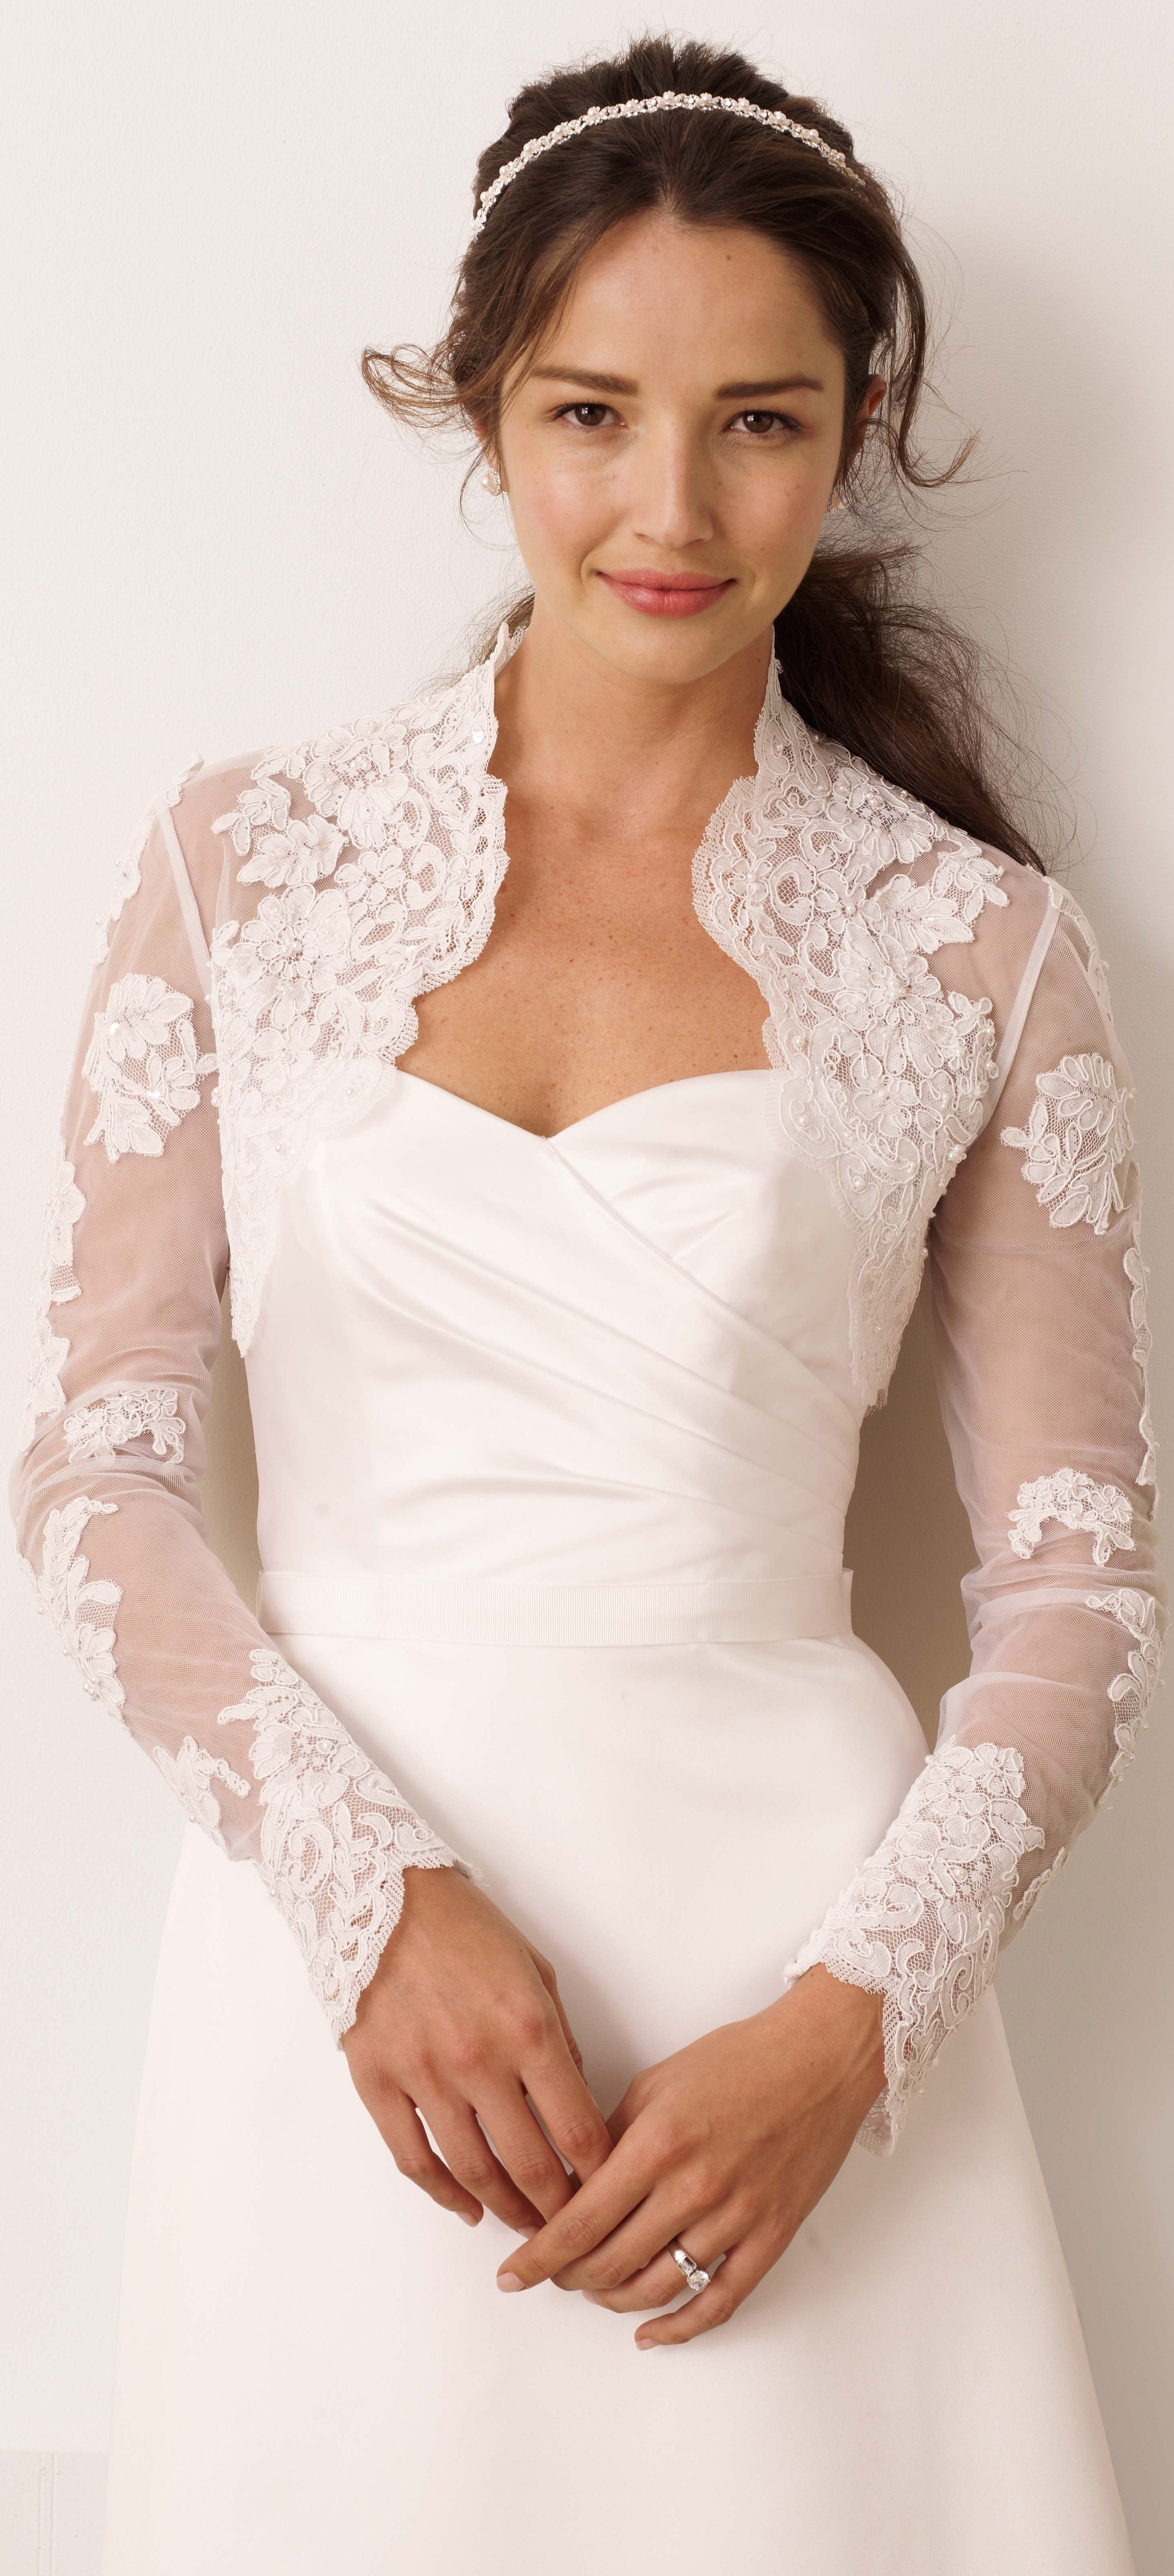 Want a wedding dress with sleeves buy a lacy bolero at someplace